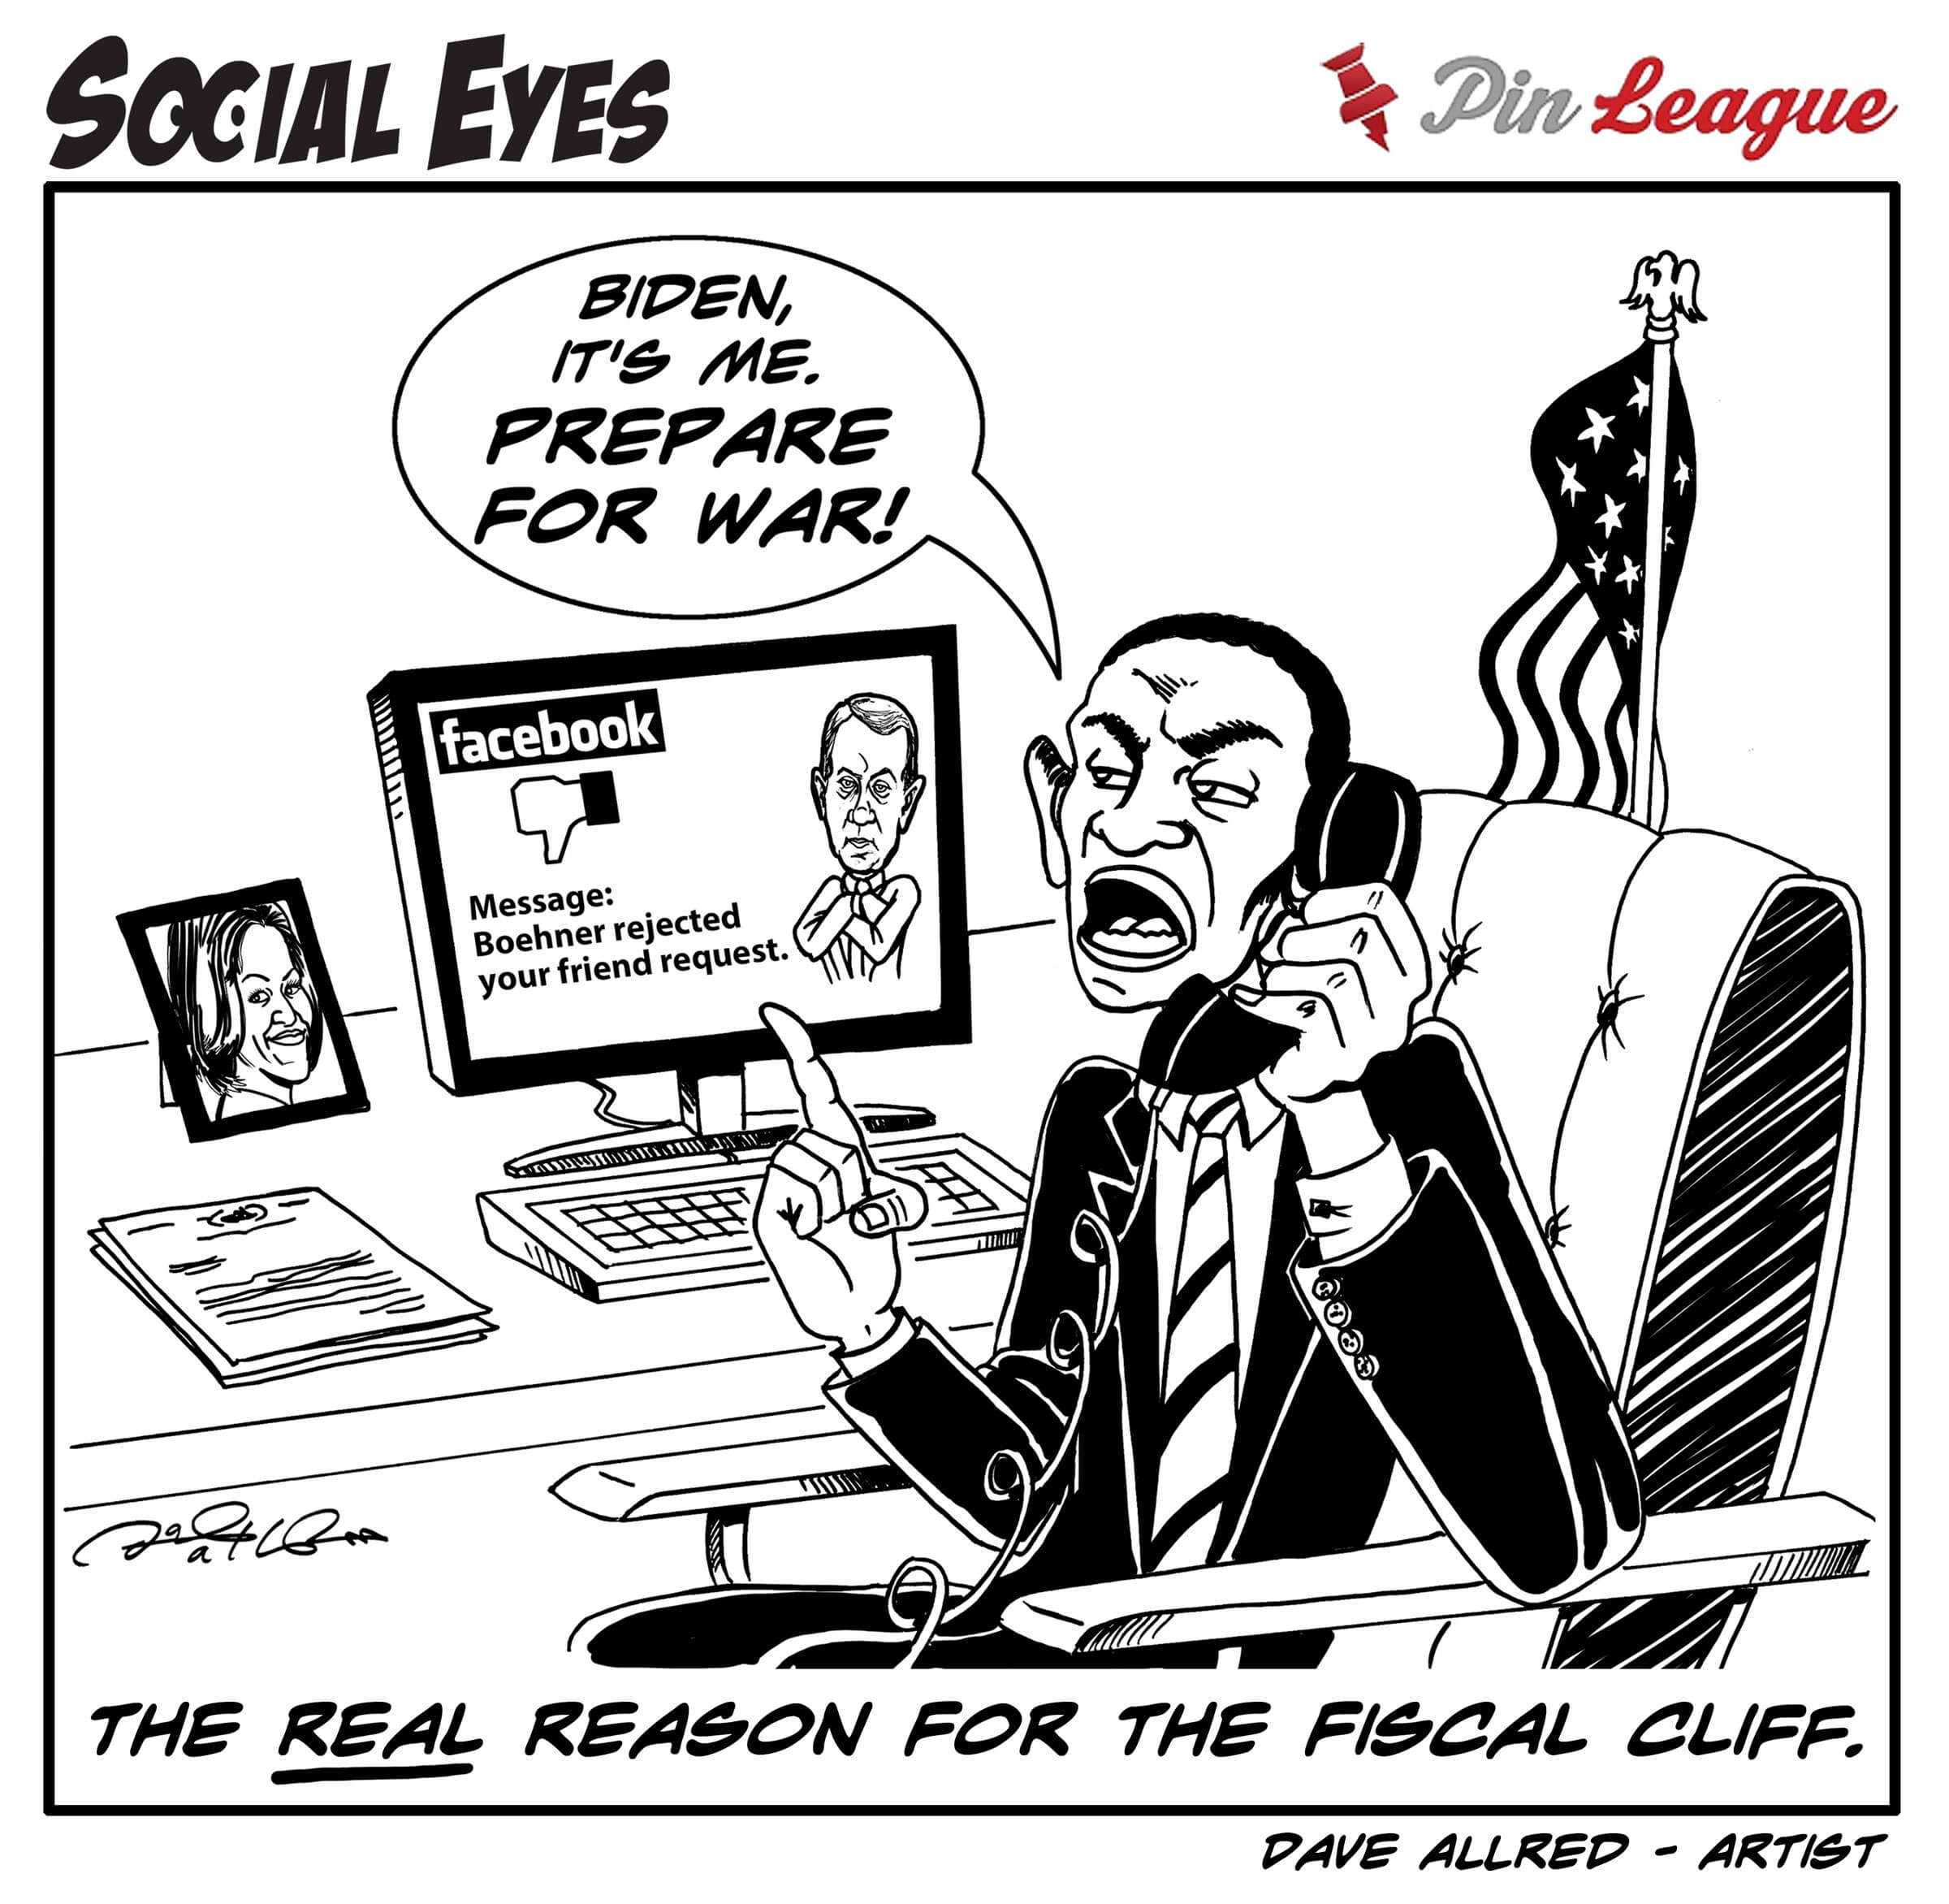 Funny Social Media Cartoon Strip by PinLeague